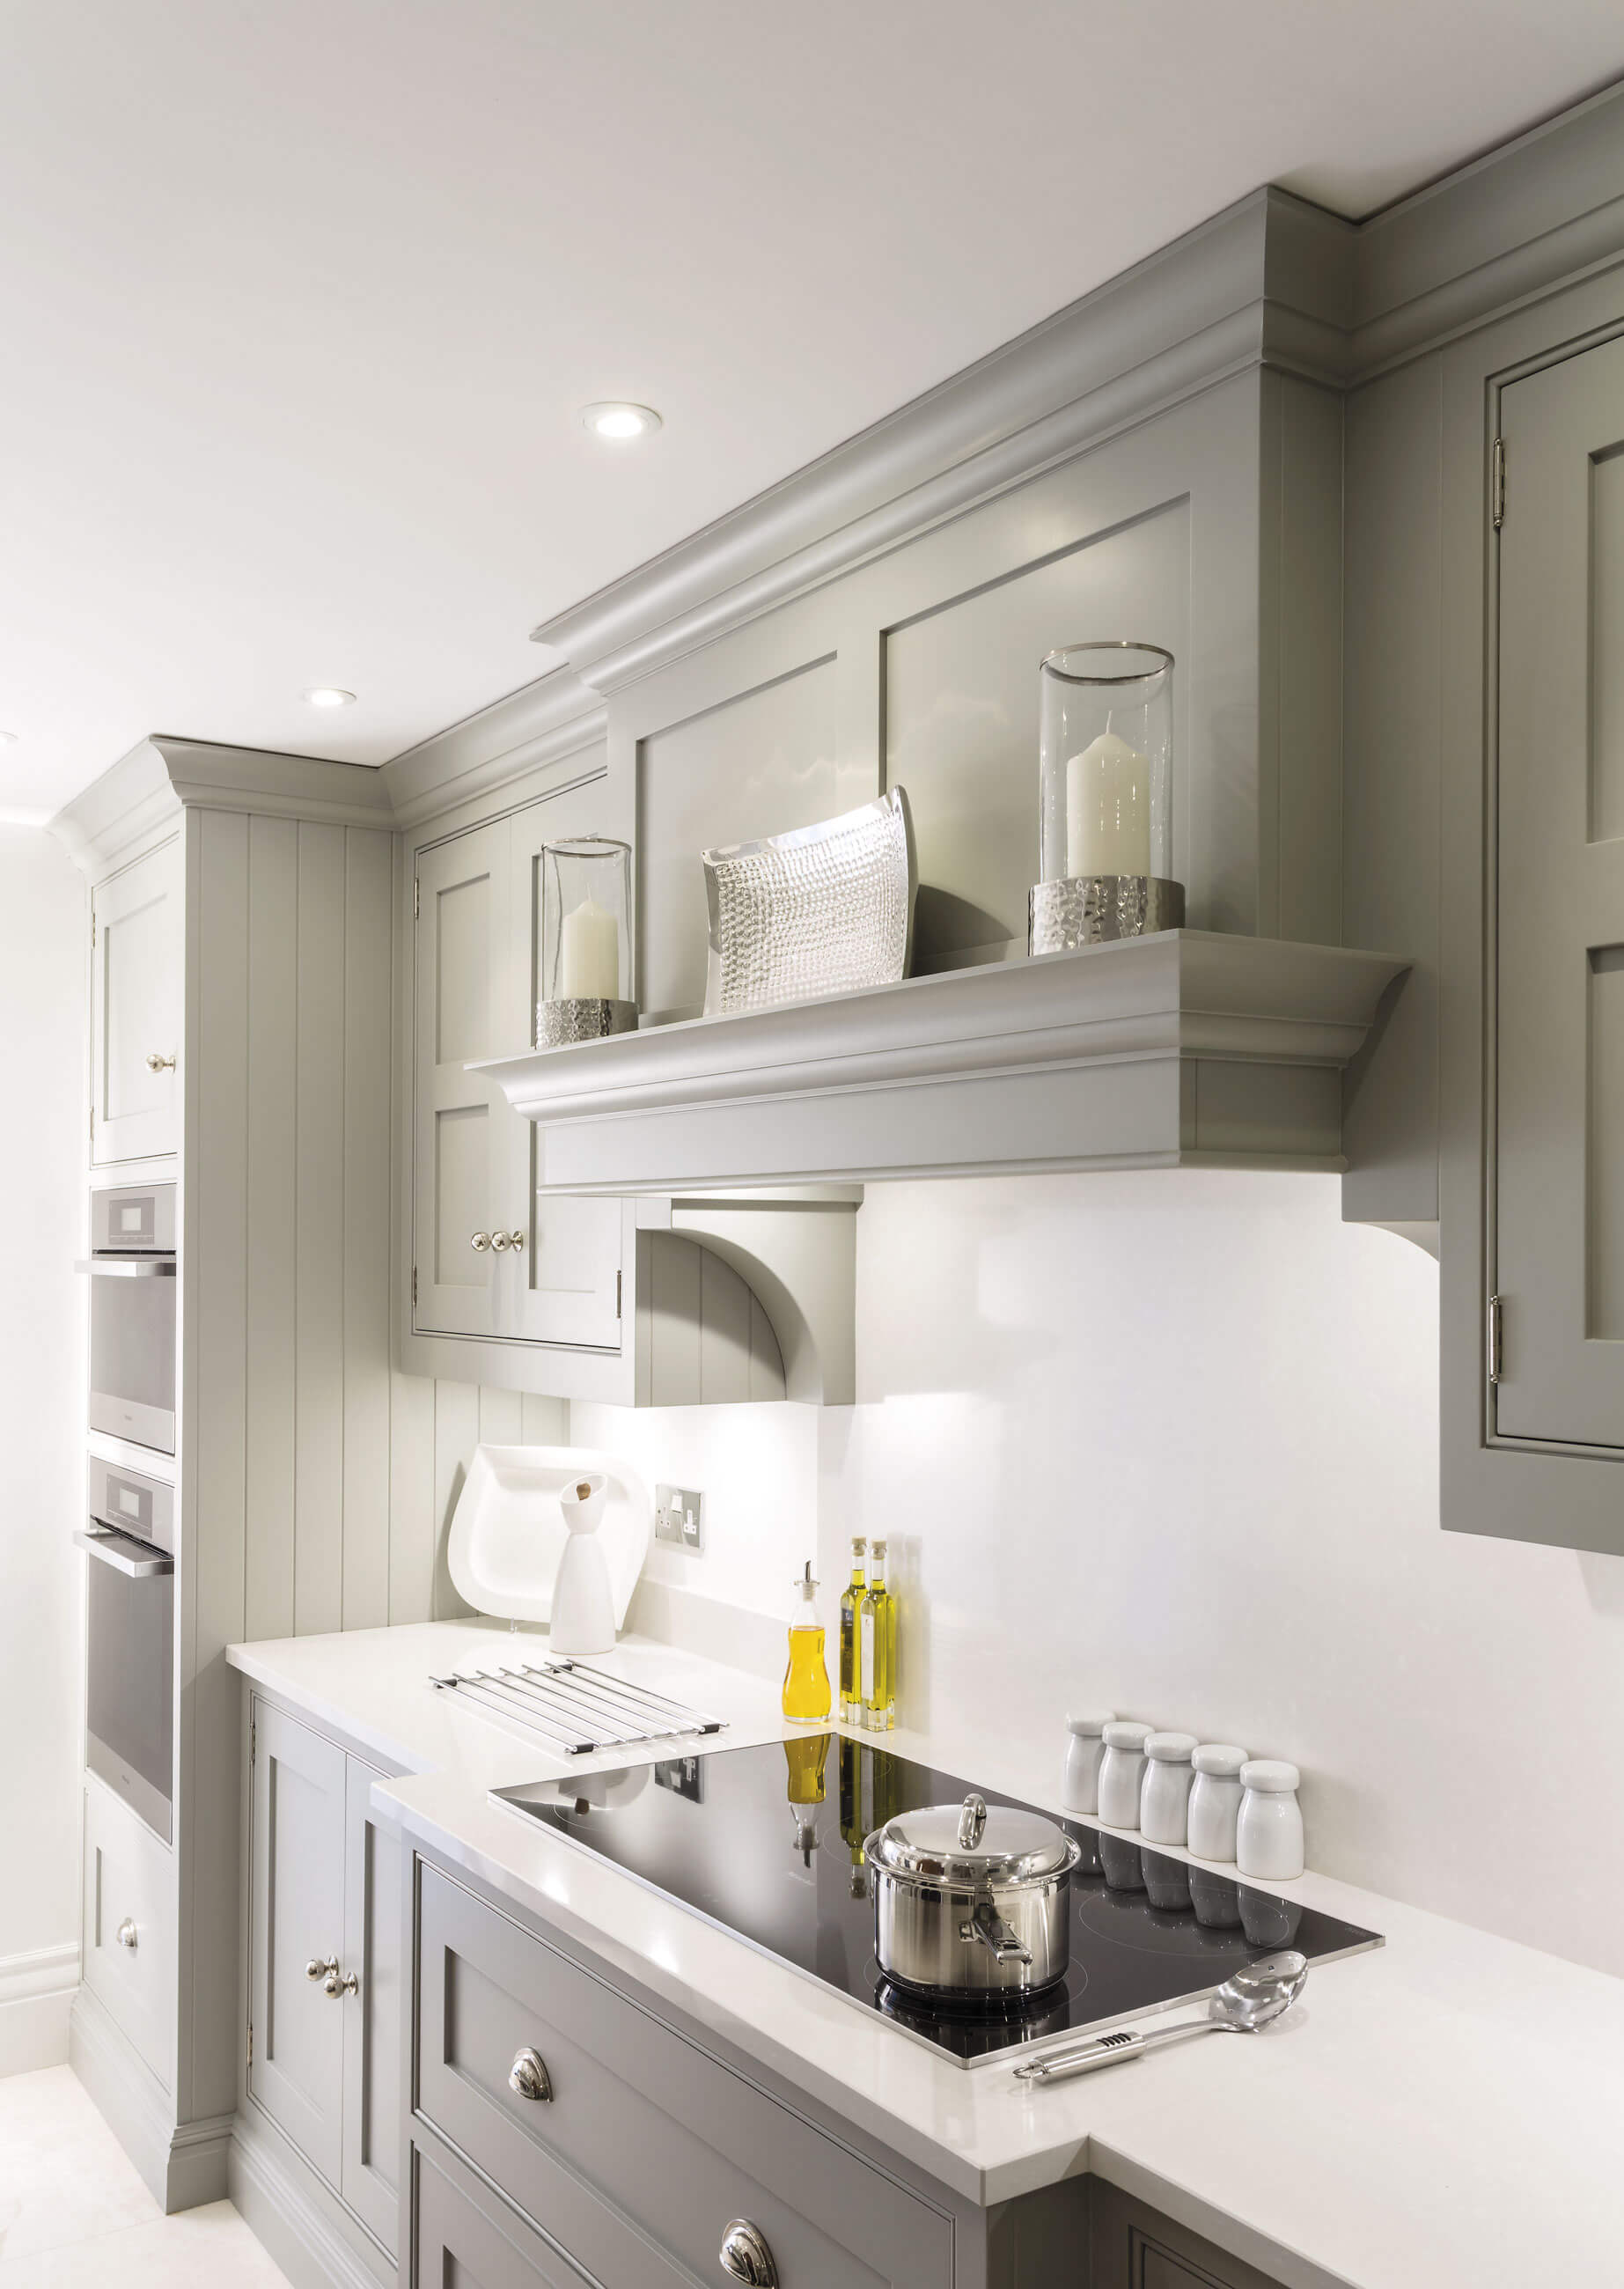 Kitchen diner design tom howley for Shaker style kitchen hoods